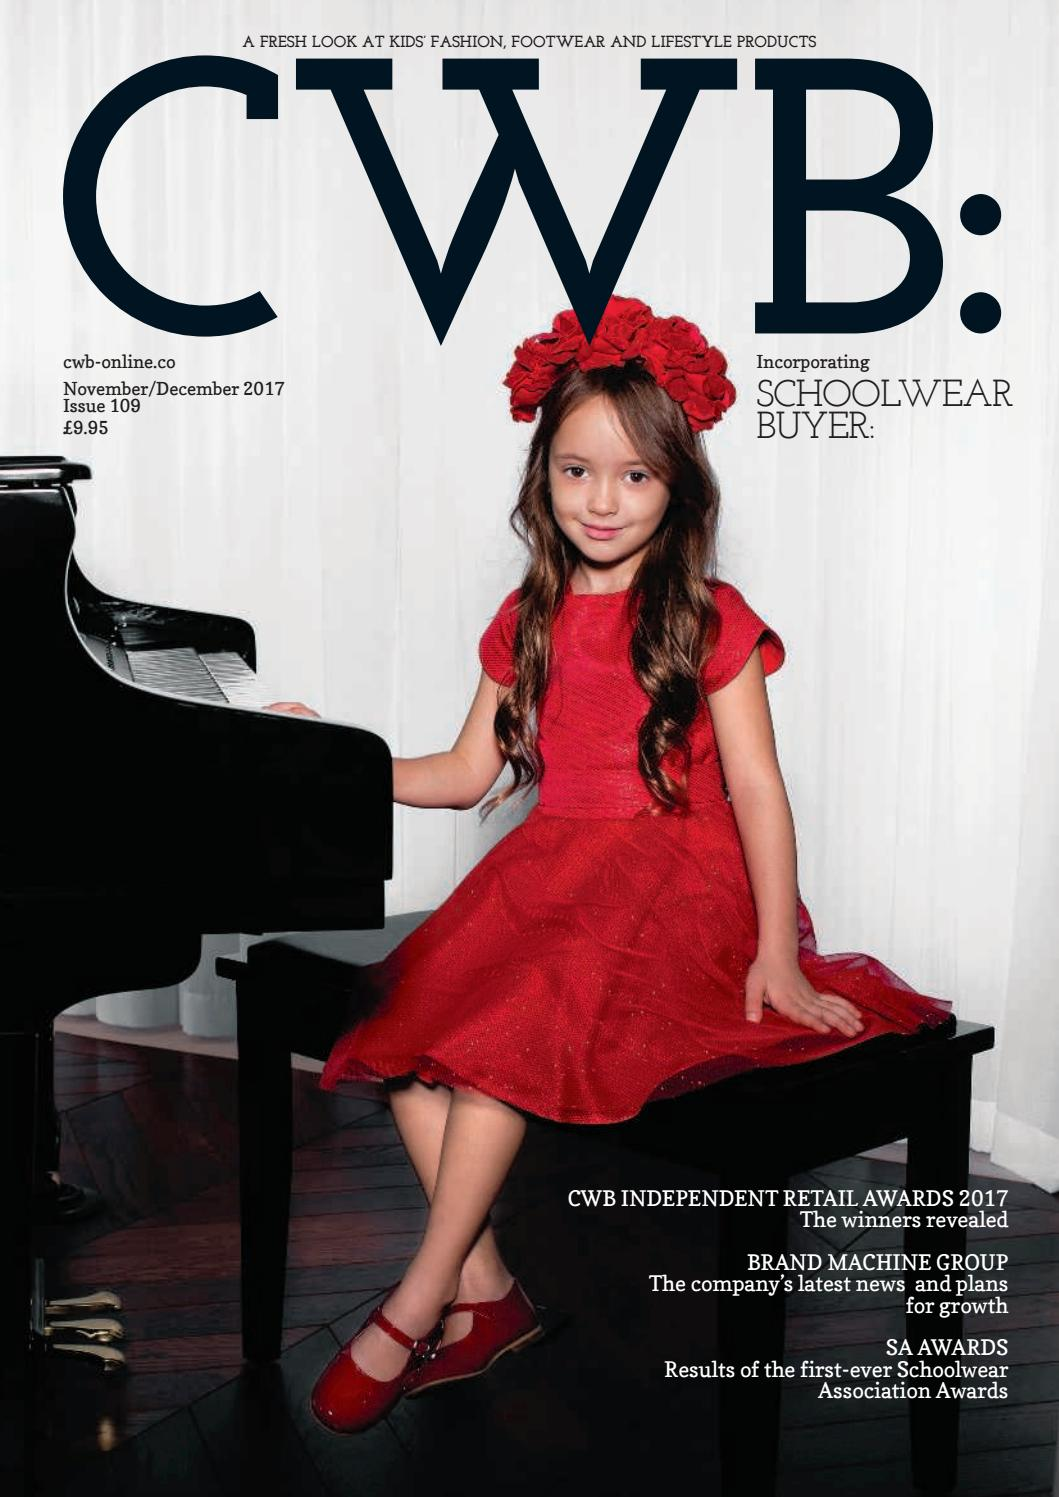 f22f796c CWB MAGAZINE NOVEMBER/DECEMBER 2017 ISSUE 109 by fashion buyers Ltd - issuu